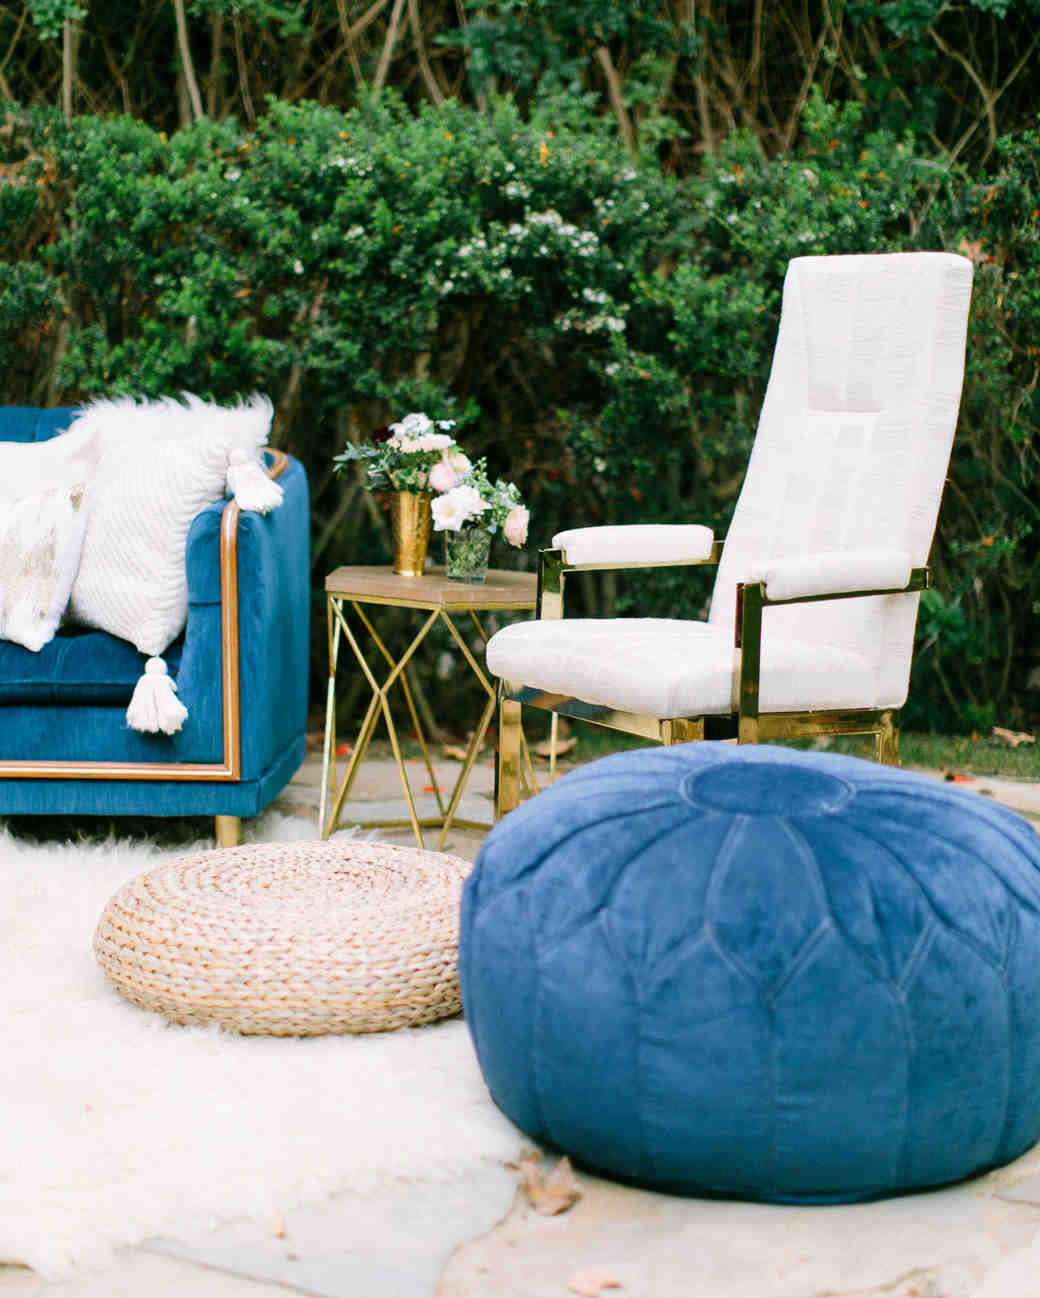 woven rattan wedding decor ottoman atop white fur rug at outdoor lounge area